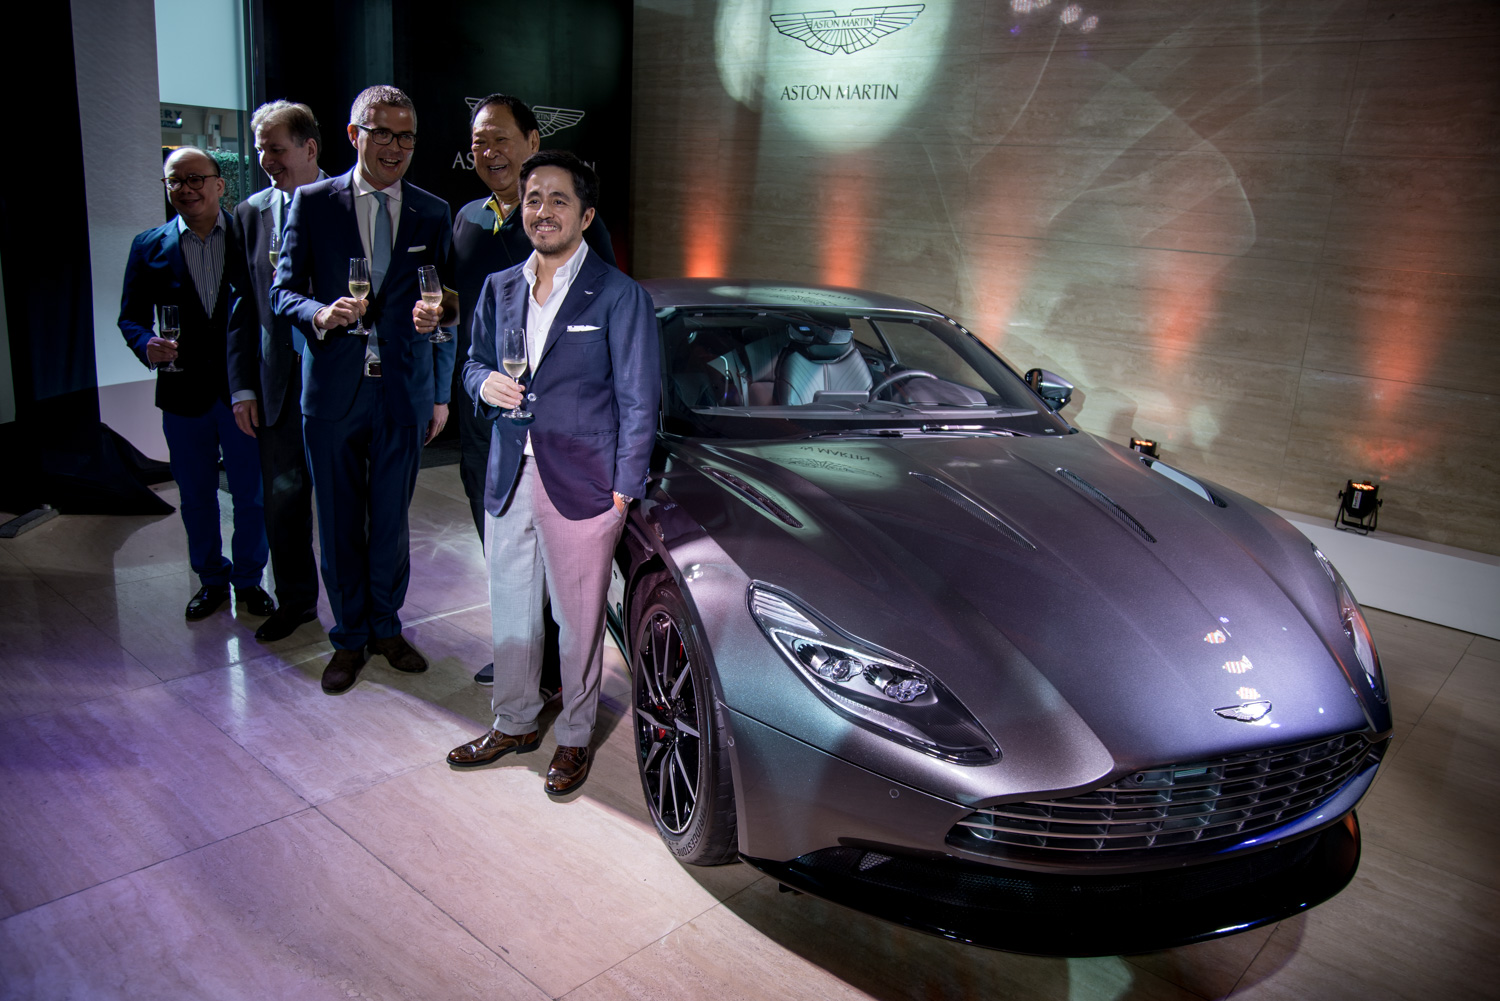 L-R: Nicky Mariano, Aston Martin Manila Managing Director, Mike Moon British Embassy Manila Director of Trade and Investment, Daniel Redpath Aston Martin Lagonda Senior Marketing and PR Manager, Wellington Soong Aston Martin Manila Director, and Marc Tagle Aston Martin Manila Chairman and President